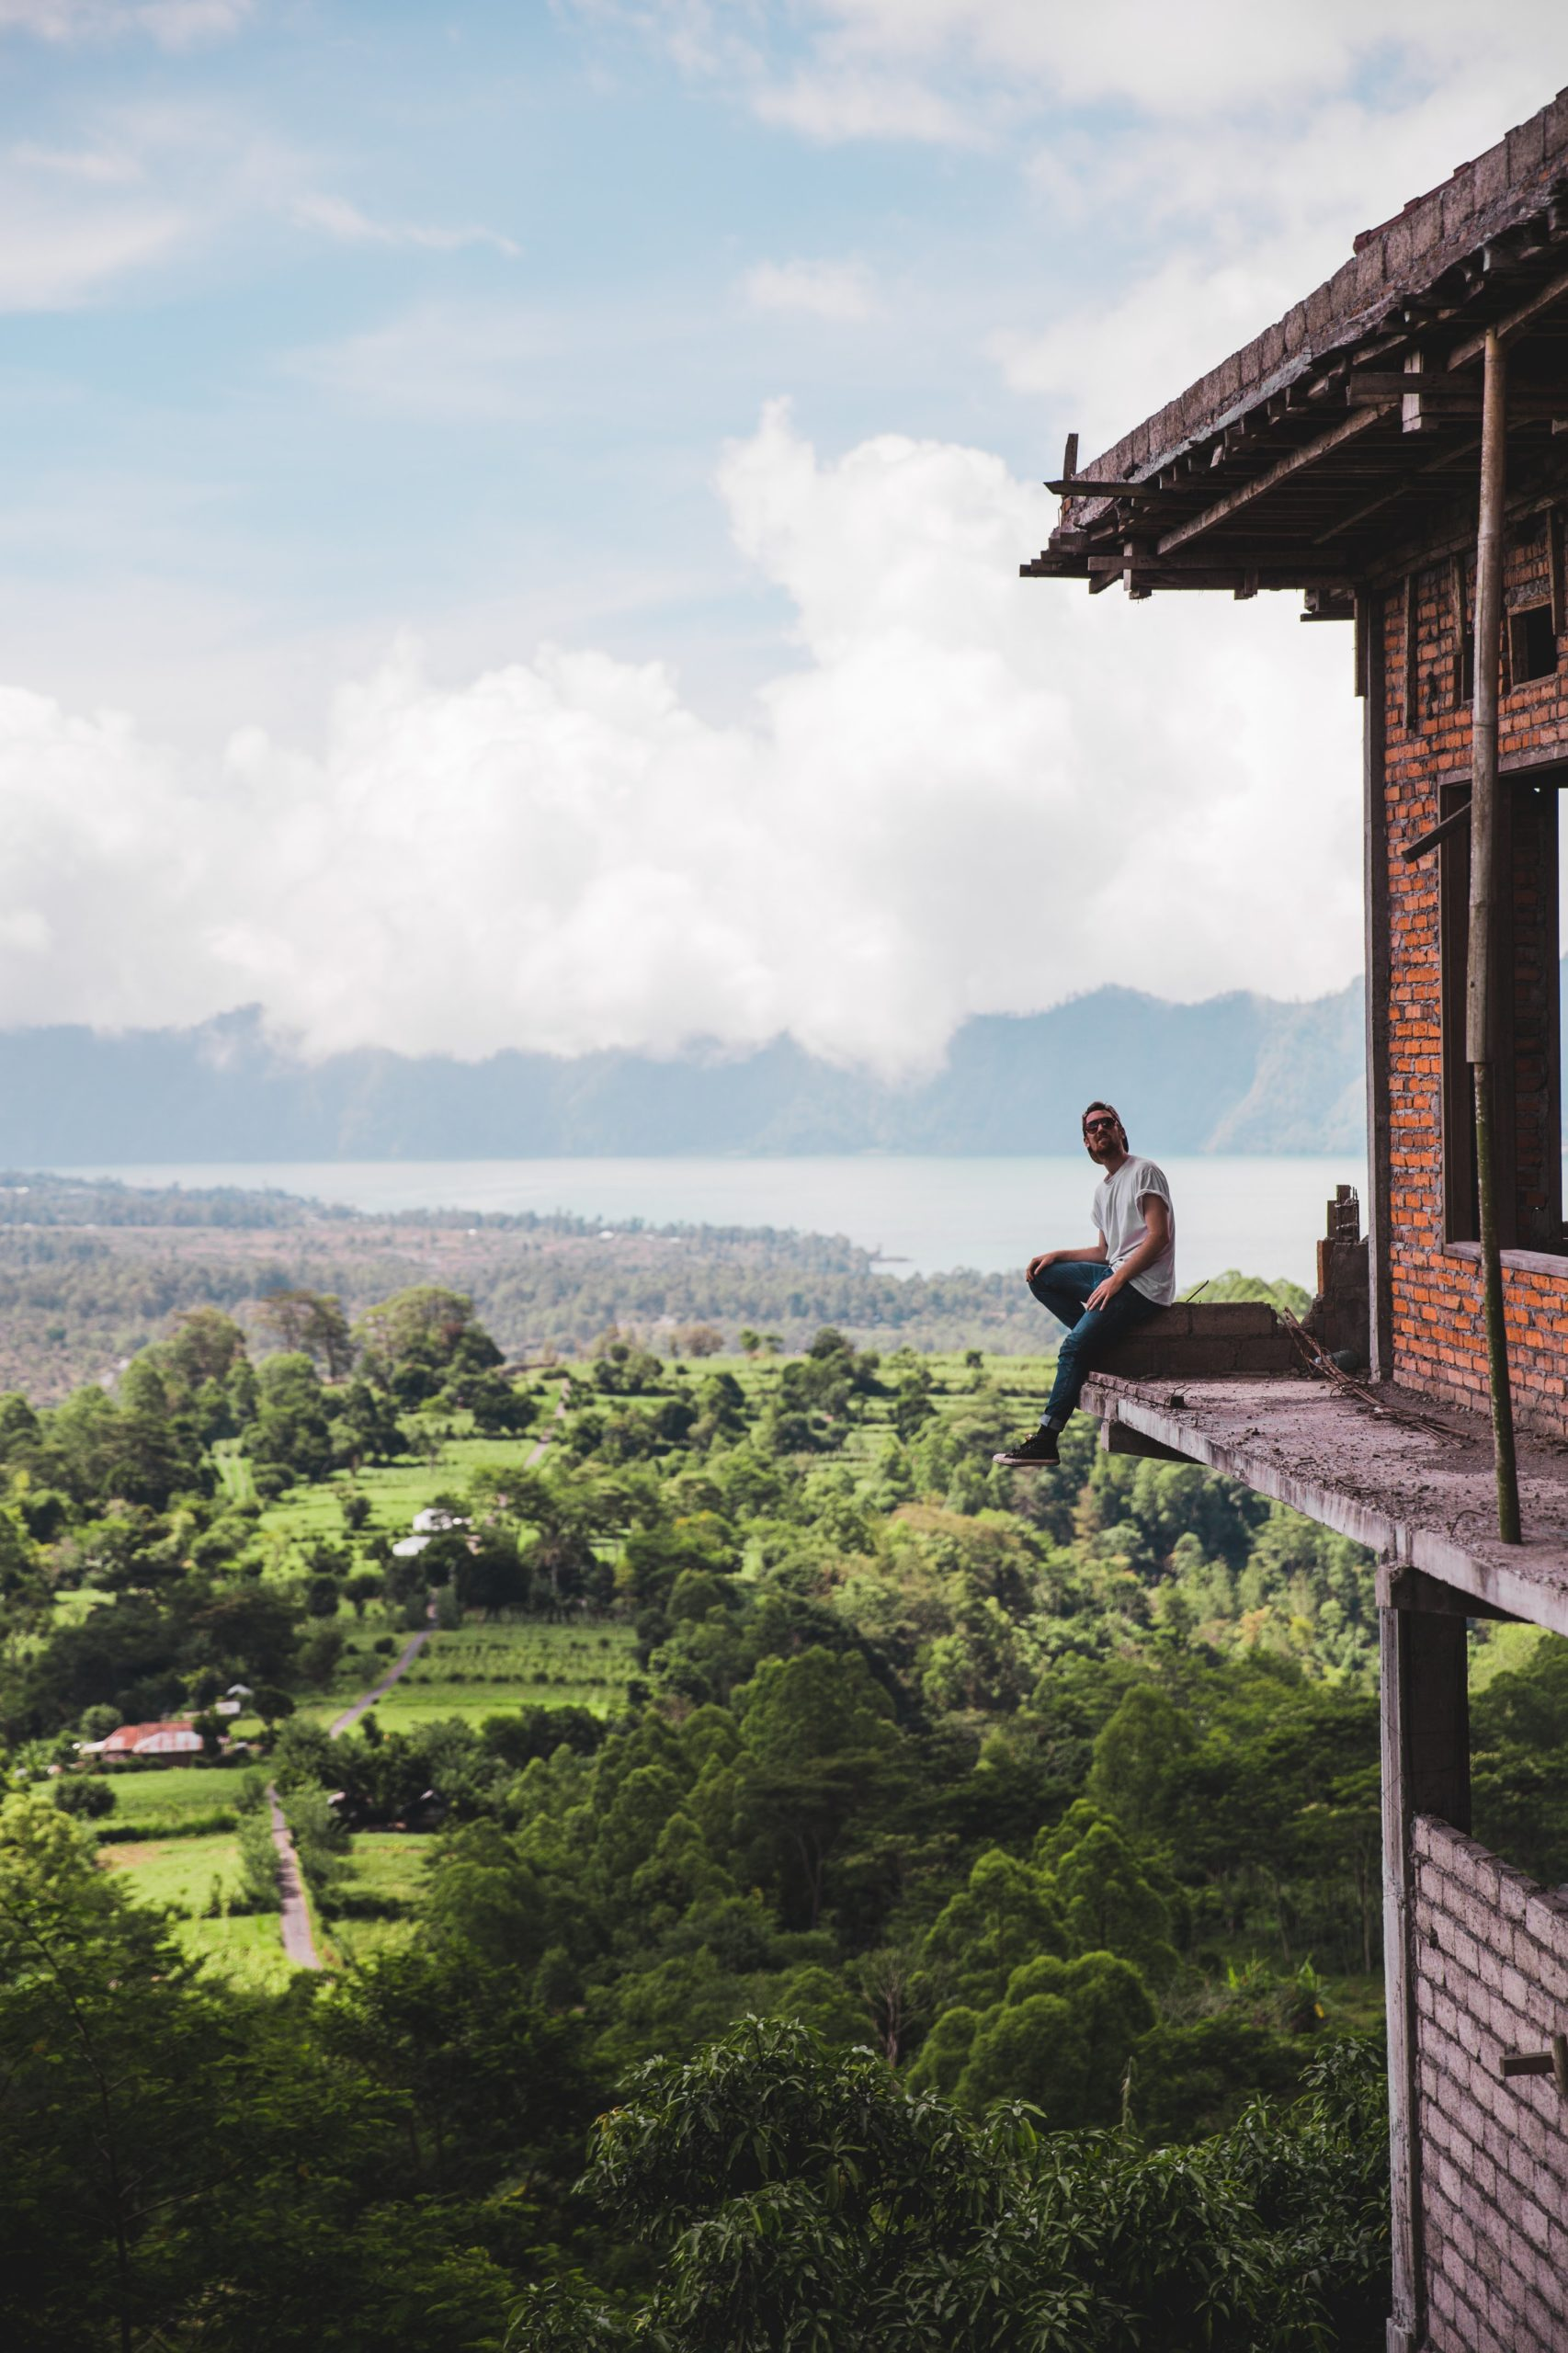 Solo Travel Ideas That Will Inspire and Shock You